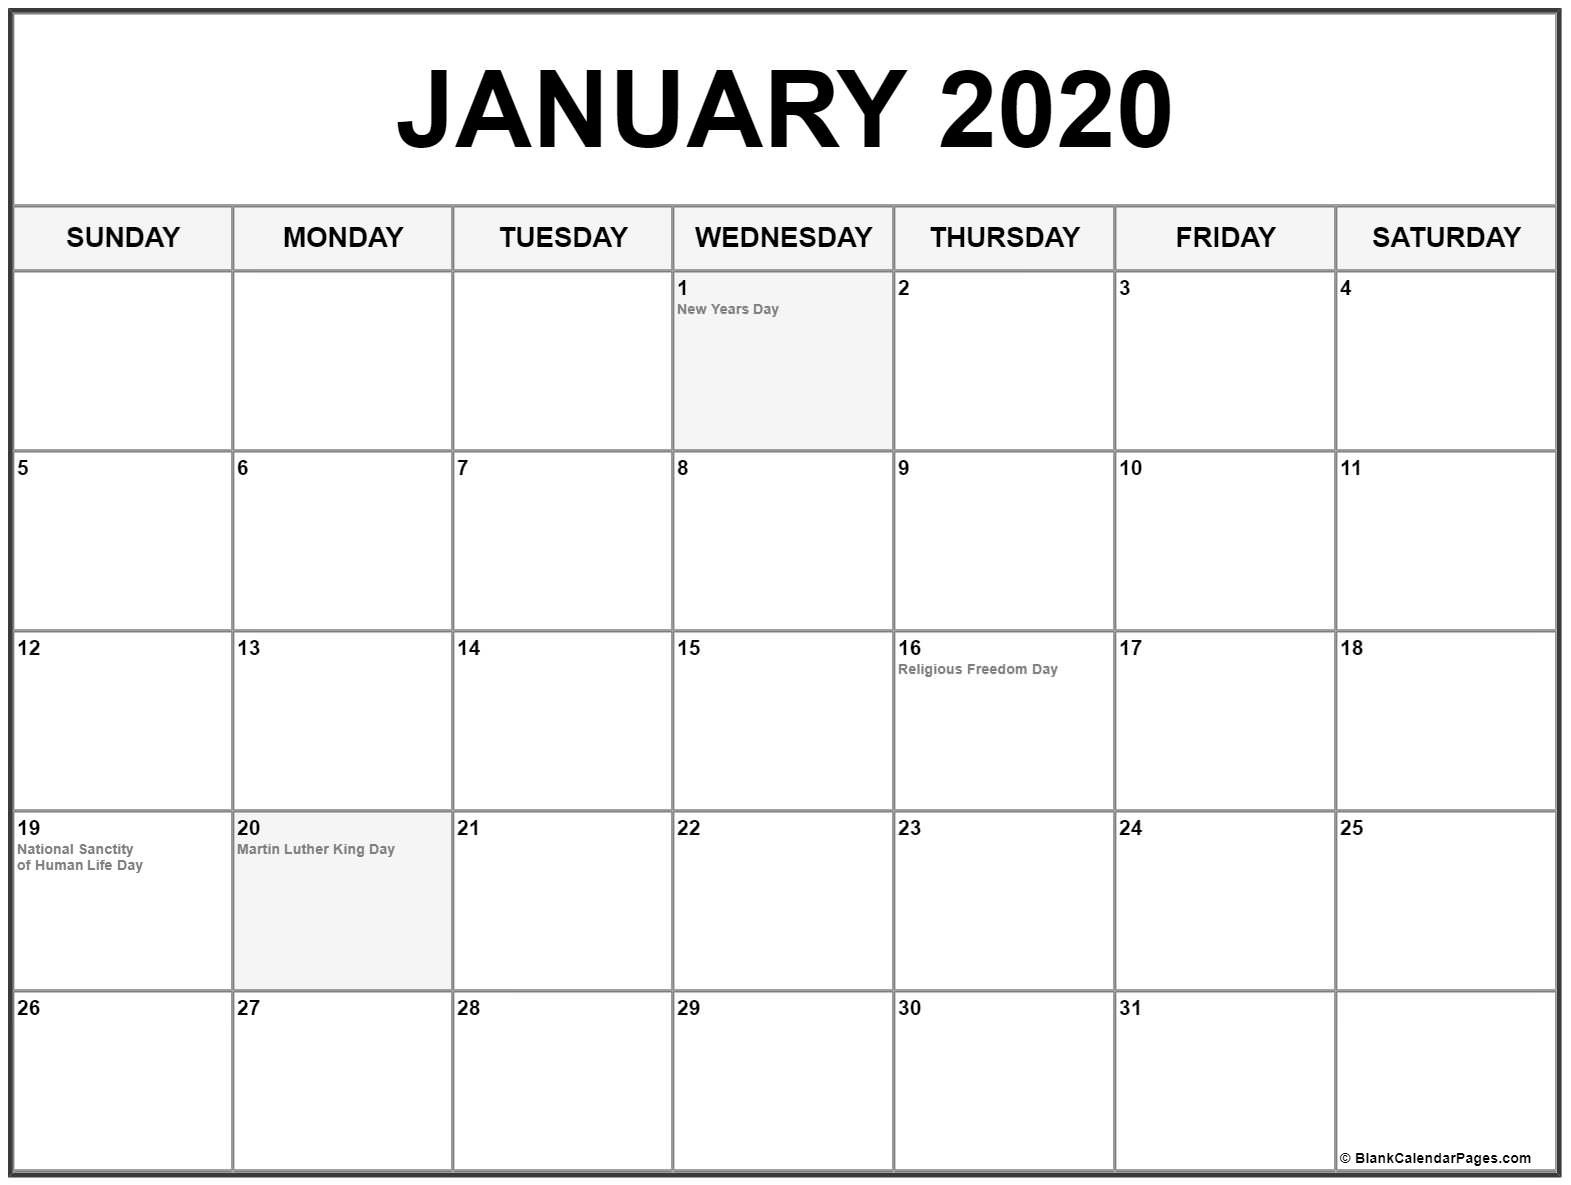 Exceptional January 2020 Calendar With Holidays • Printable-2020 Calendar With Religious Holidays